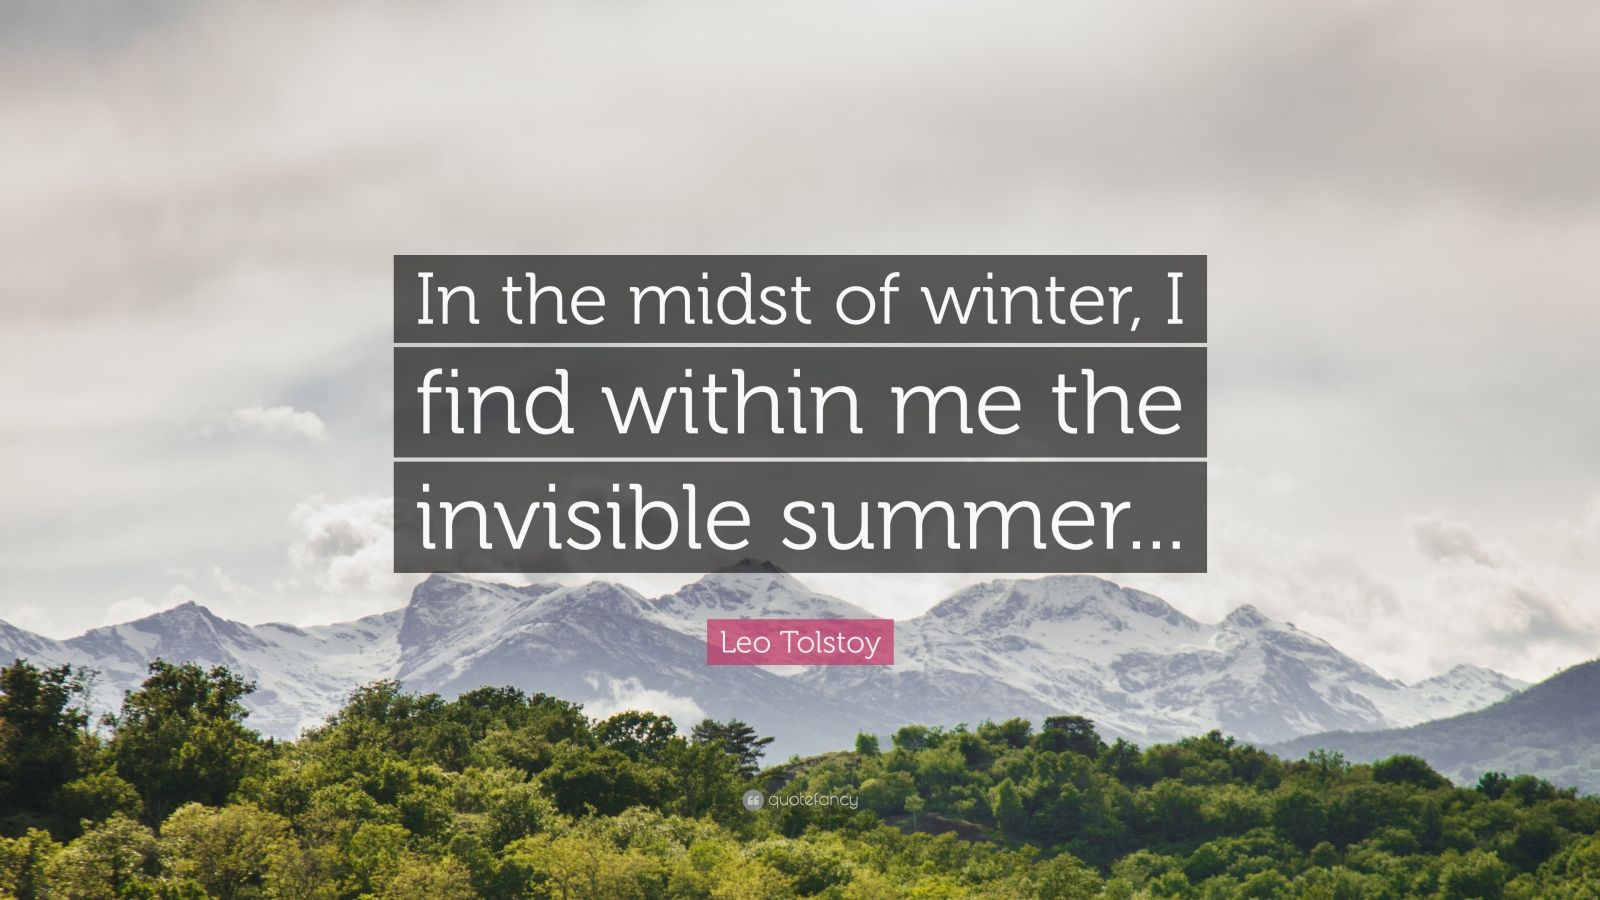 "Leo Tolstoy Quote: ""In the midst of winter, I find within me the invisible summer..."""